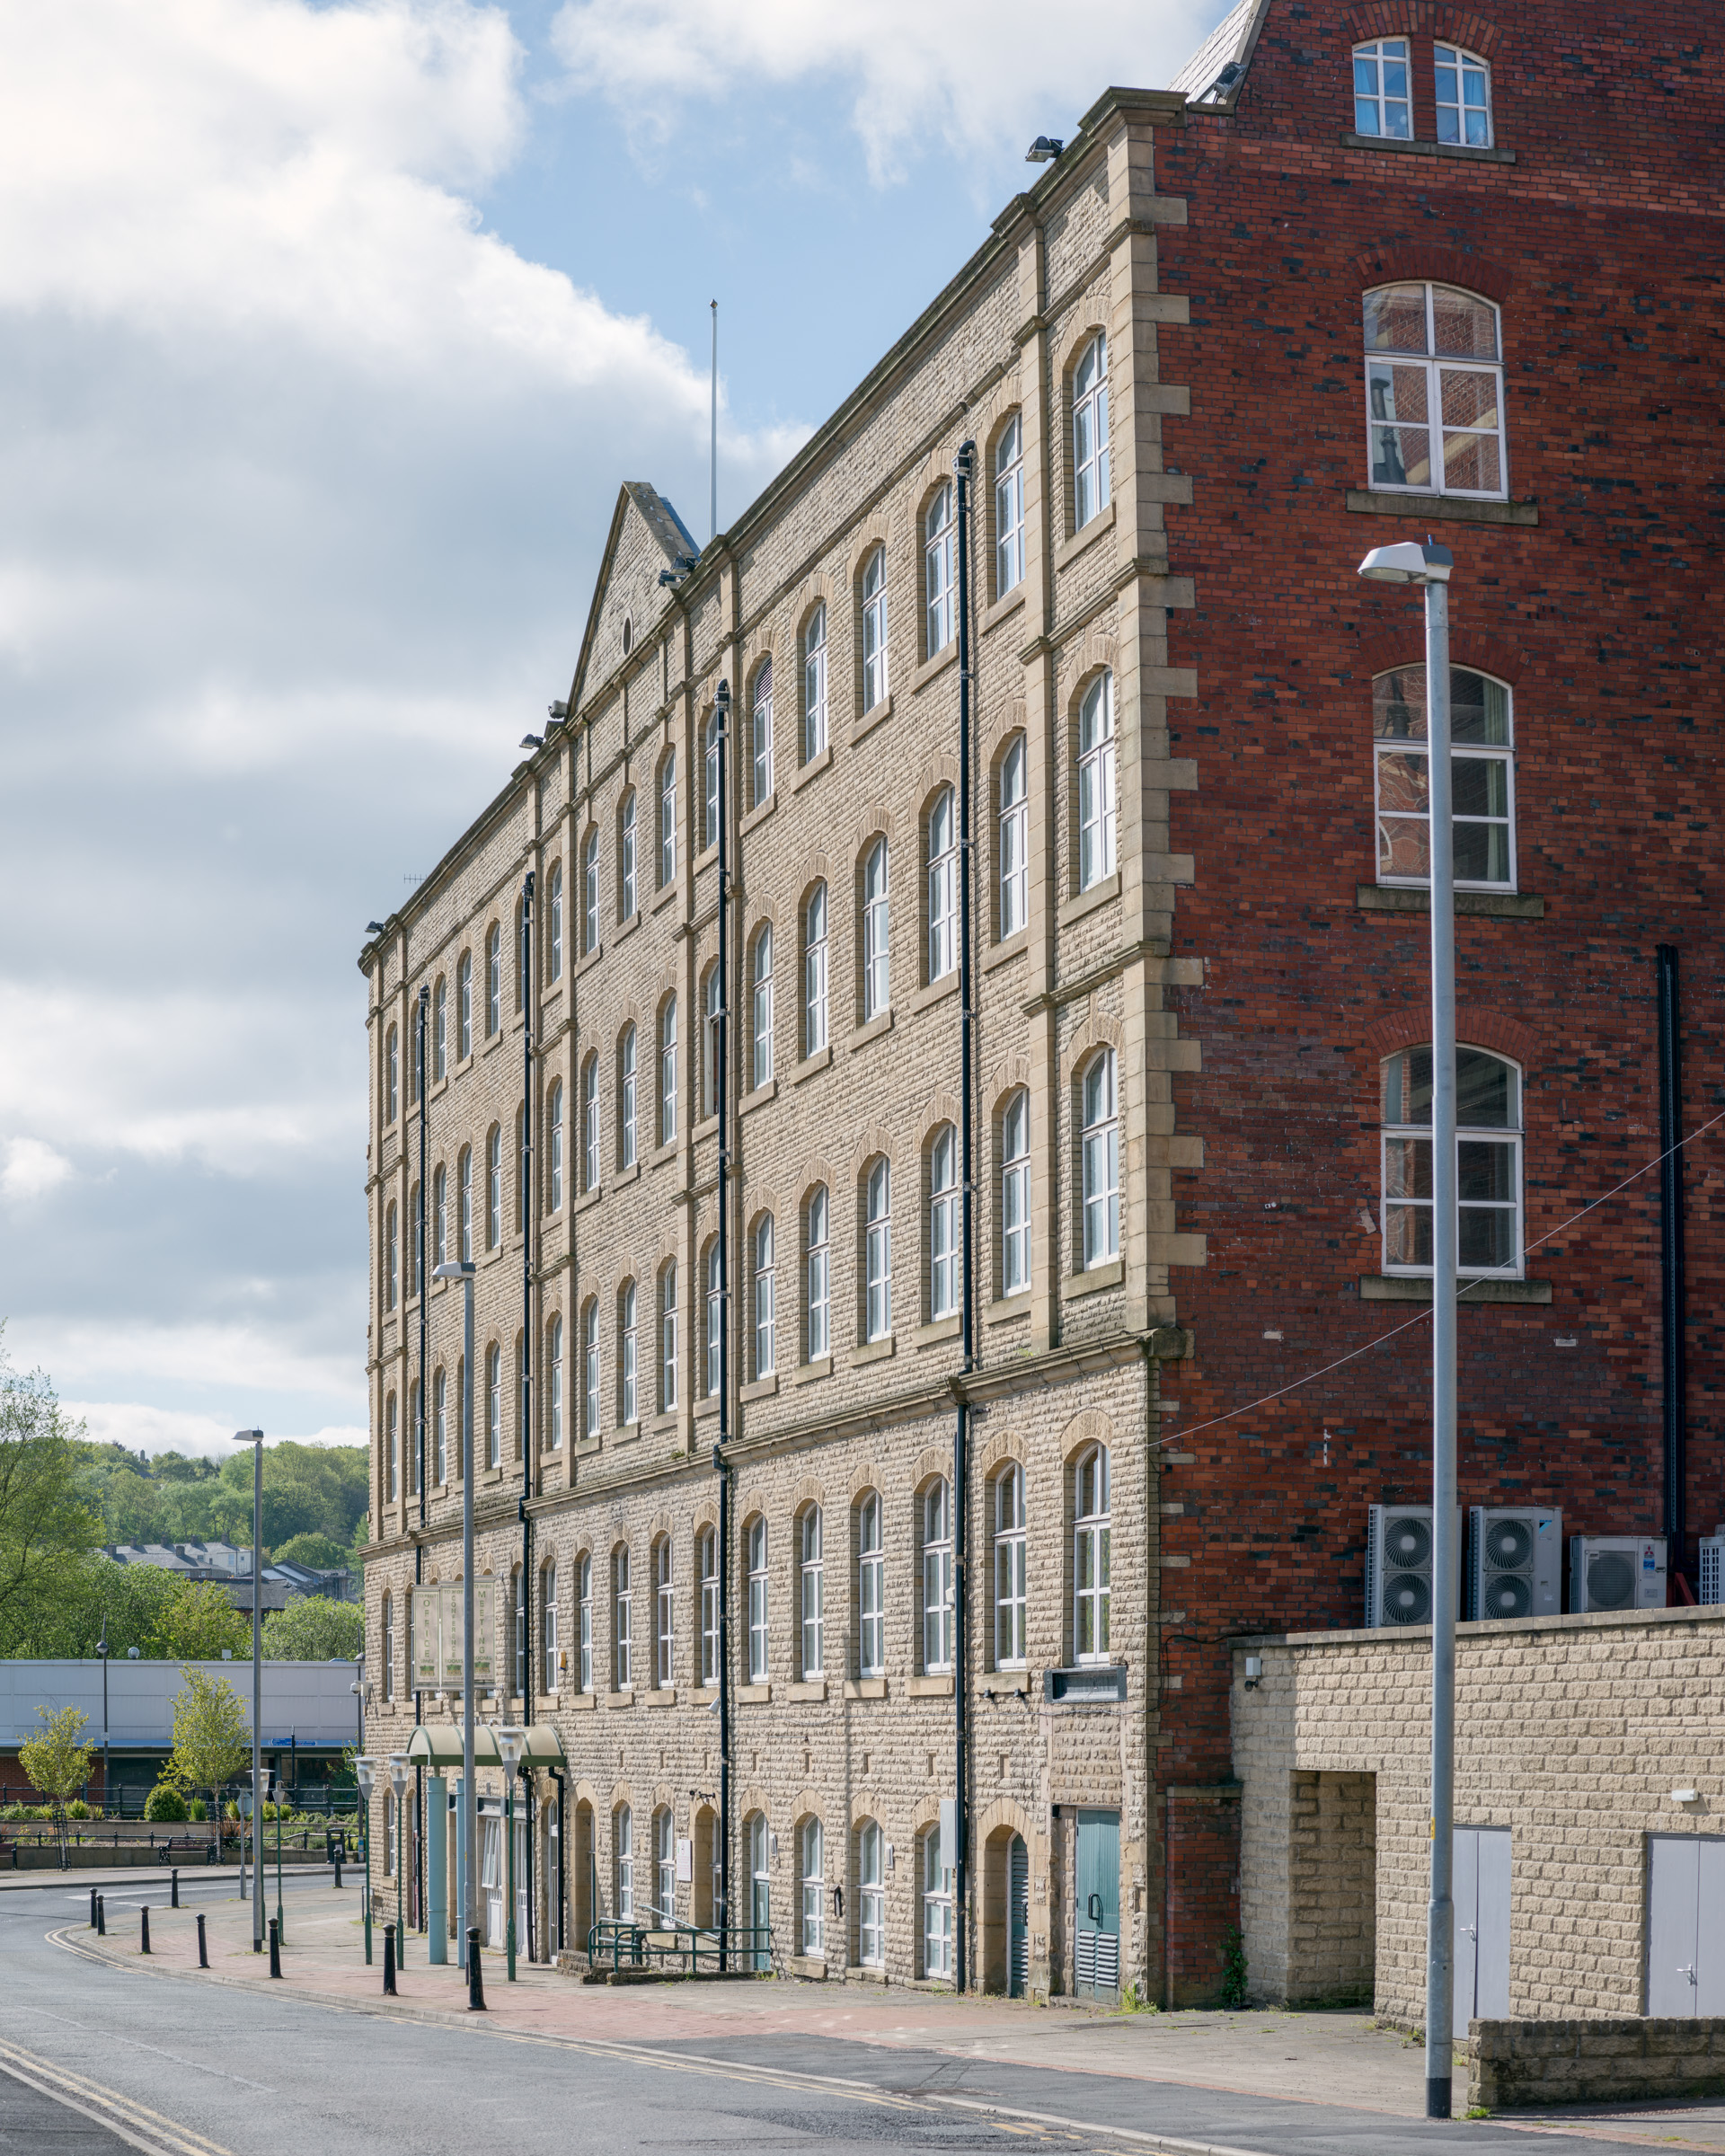 The Globe Conference and Business Centre - St James Square, BB5 - Accrington